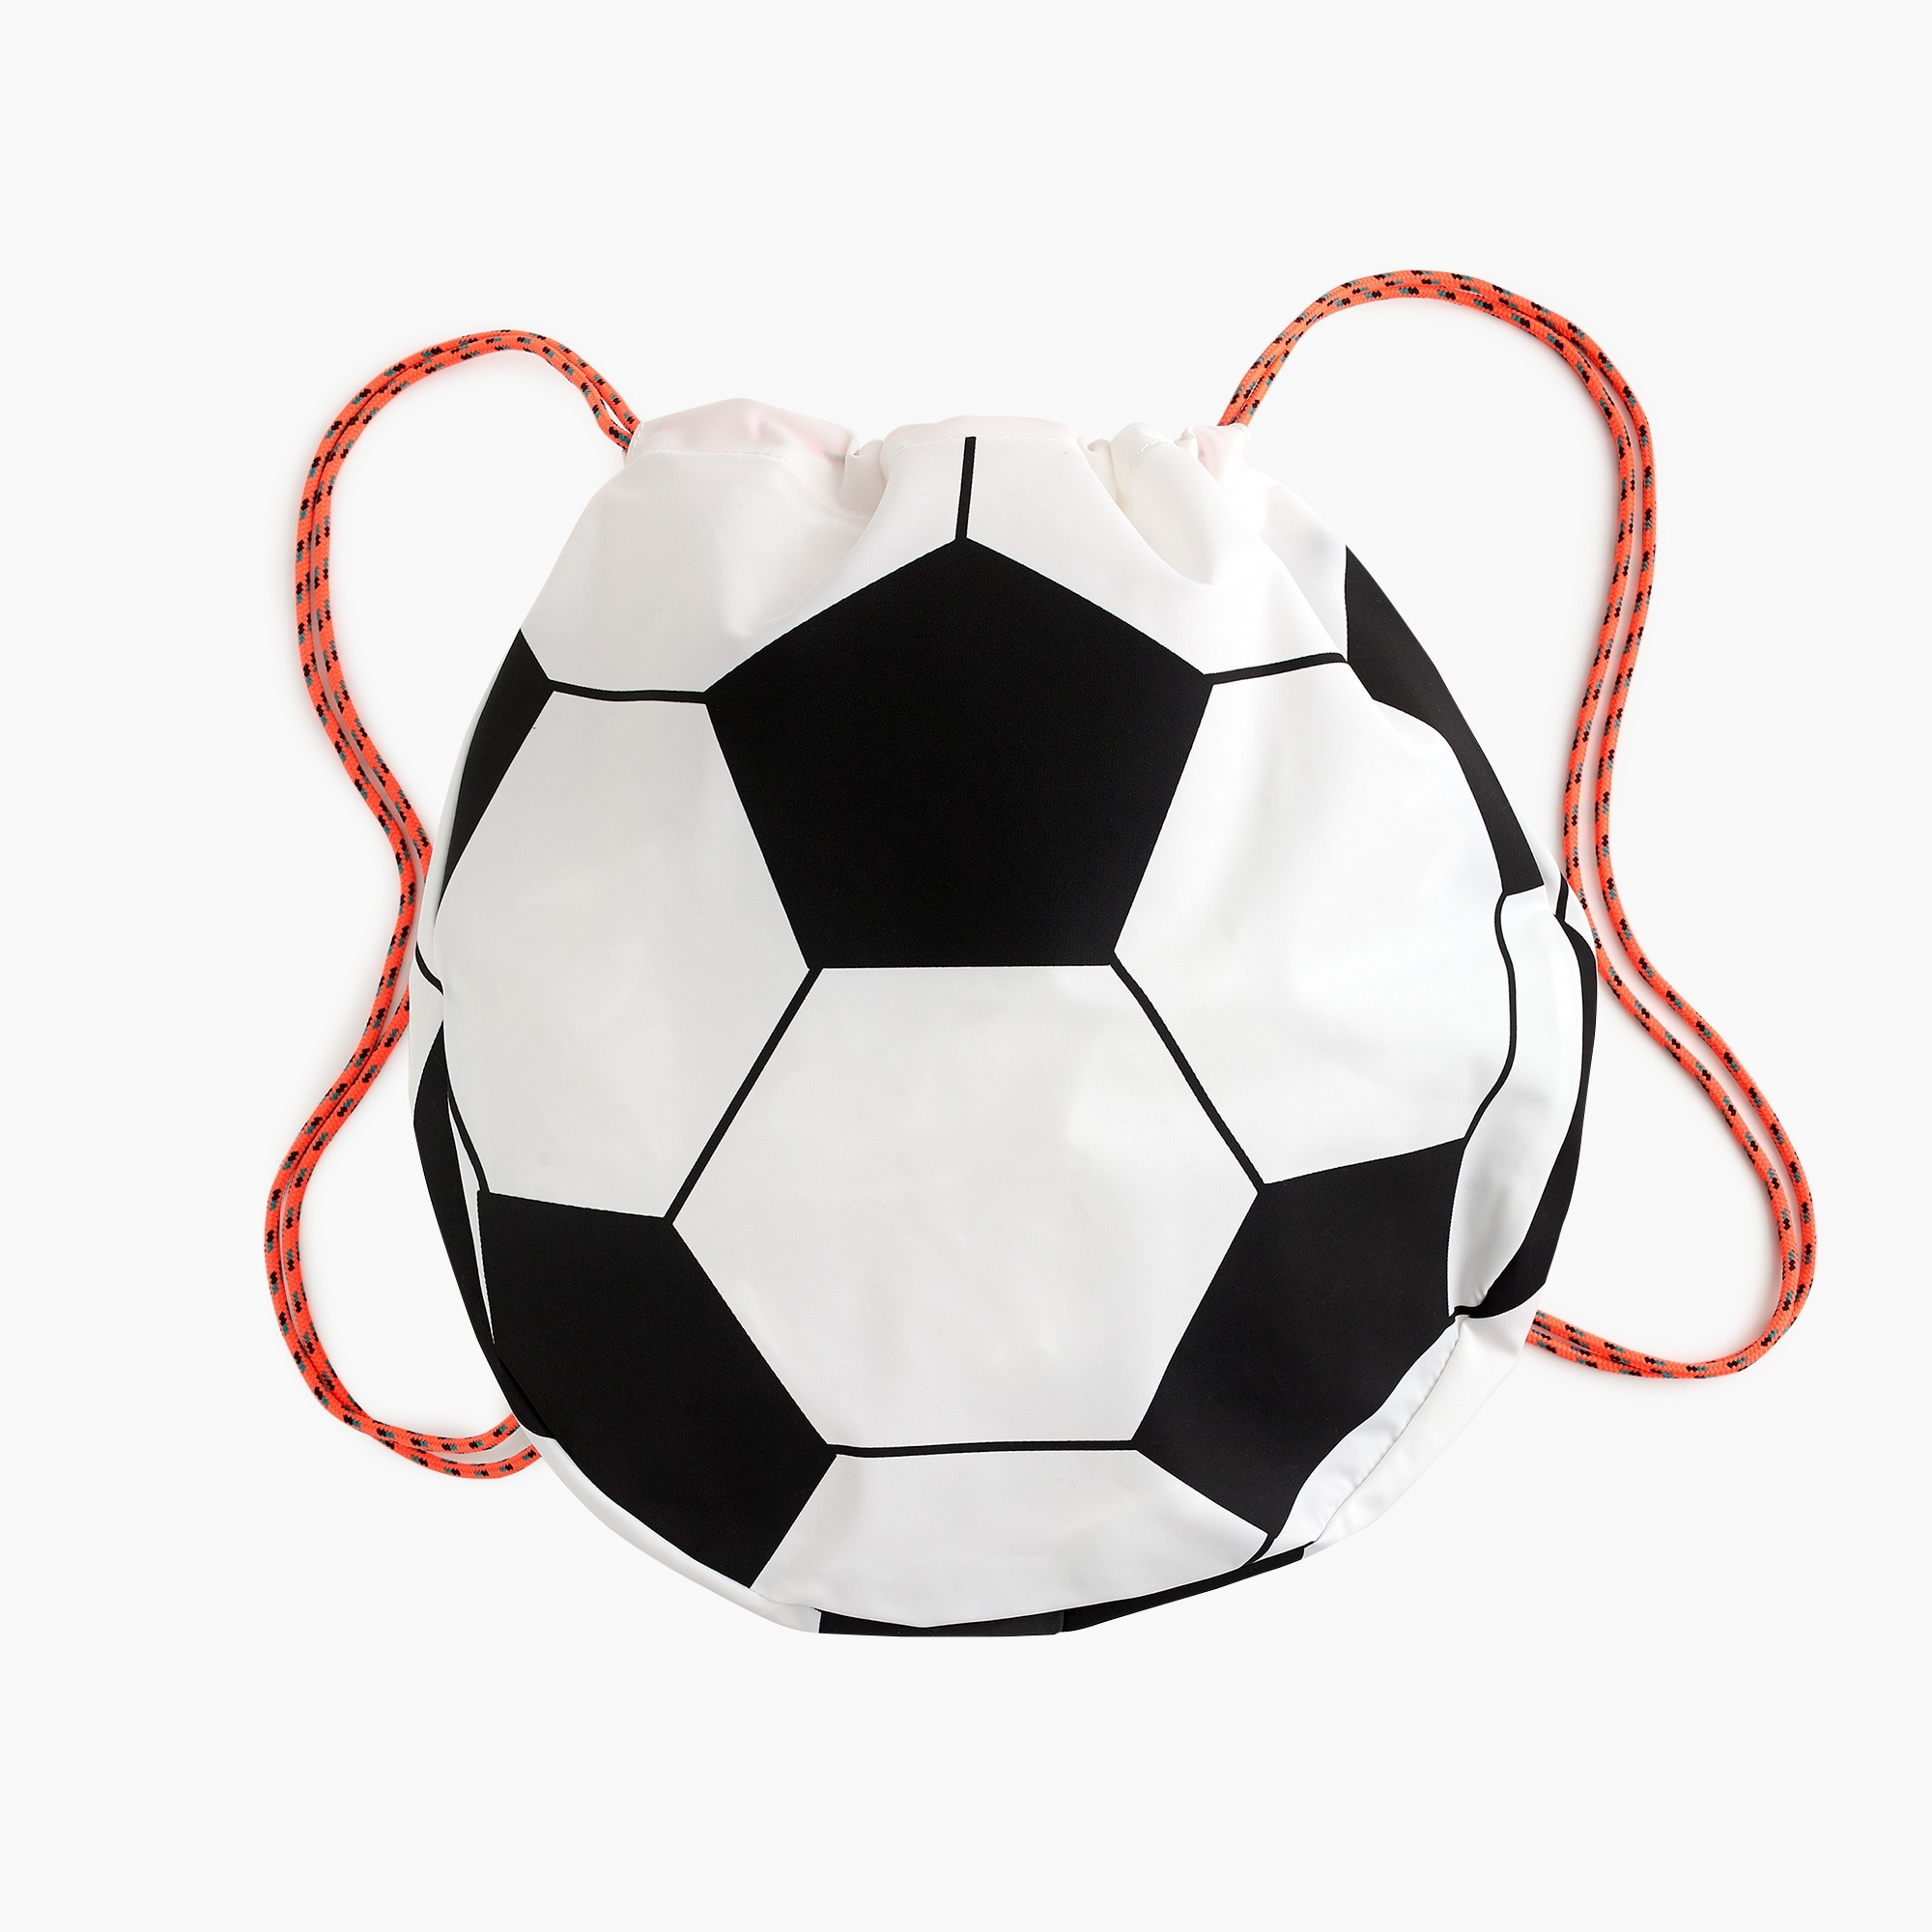 Kids' soccer ball-shaped drawstring backpack boy new arrivals c